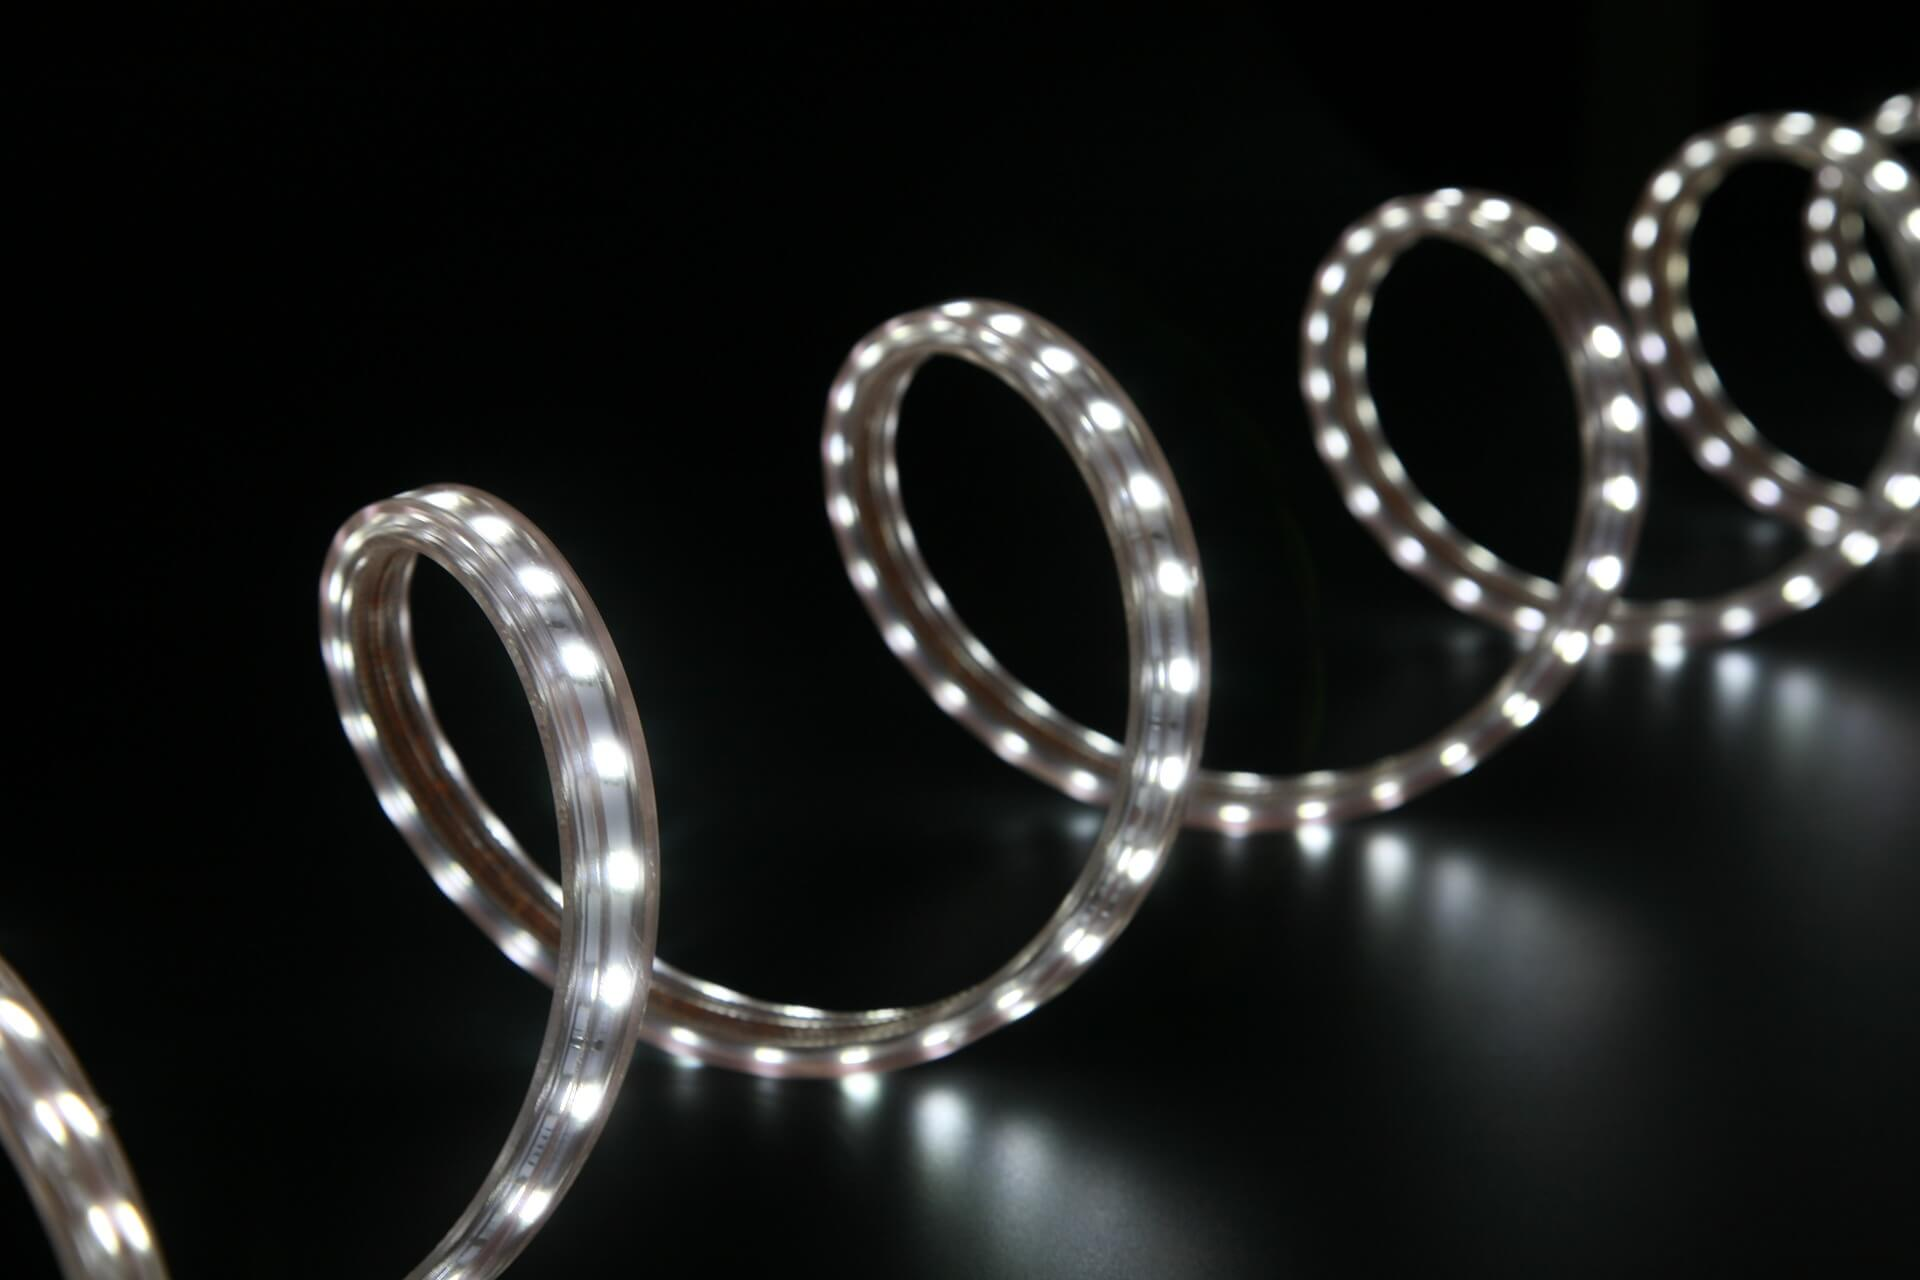 led-linear-lighting